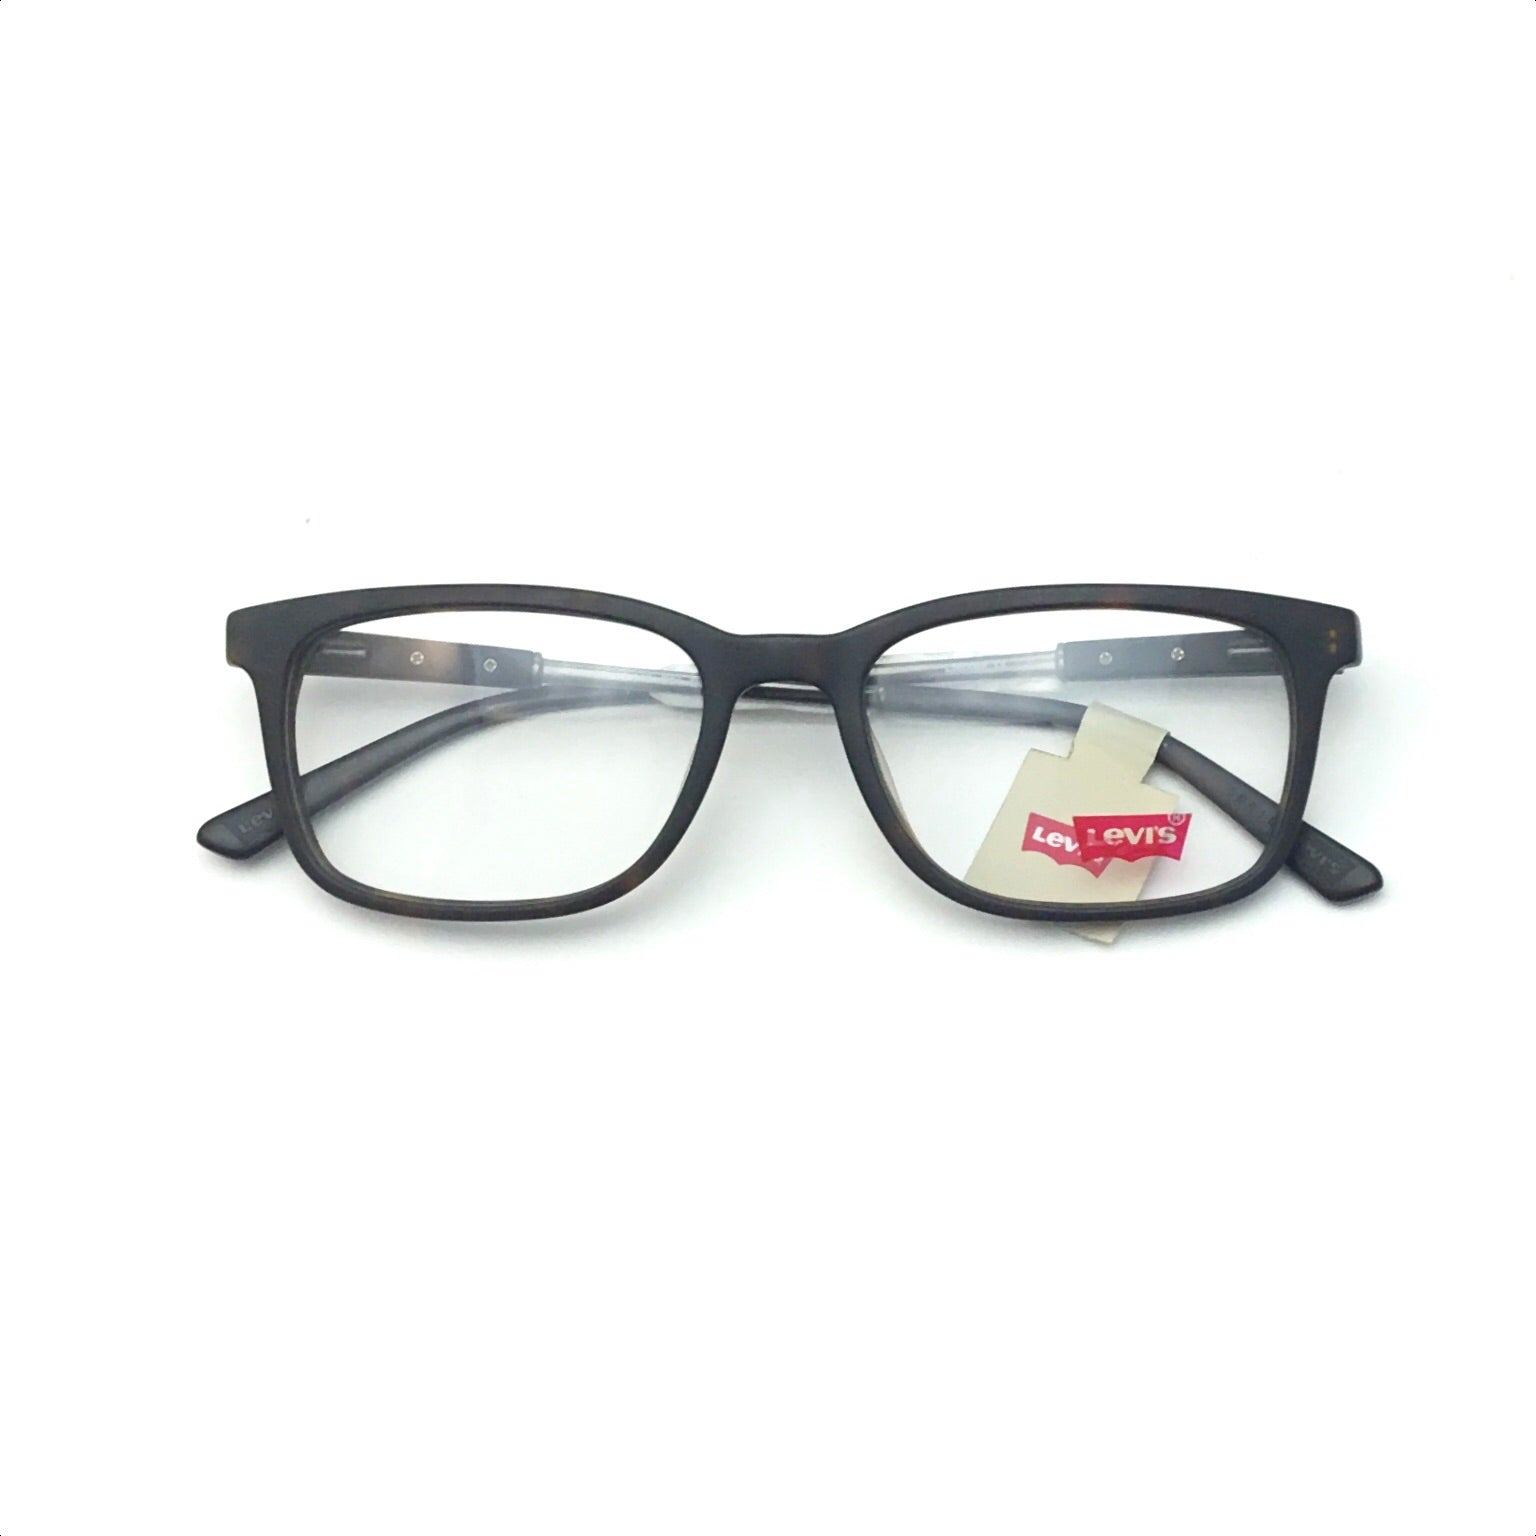 Levi's glasses $149 Rectangular E23